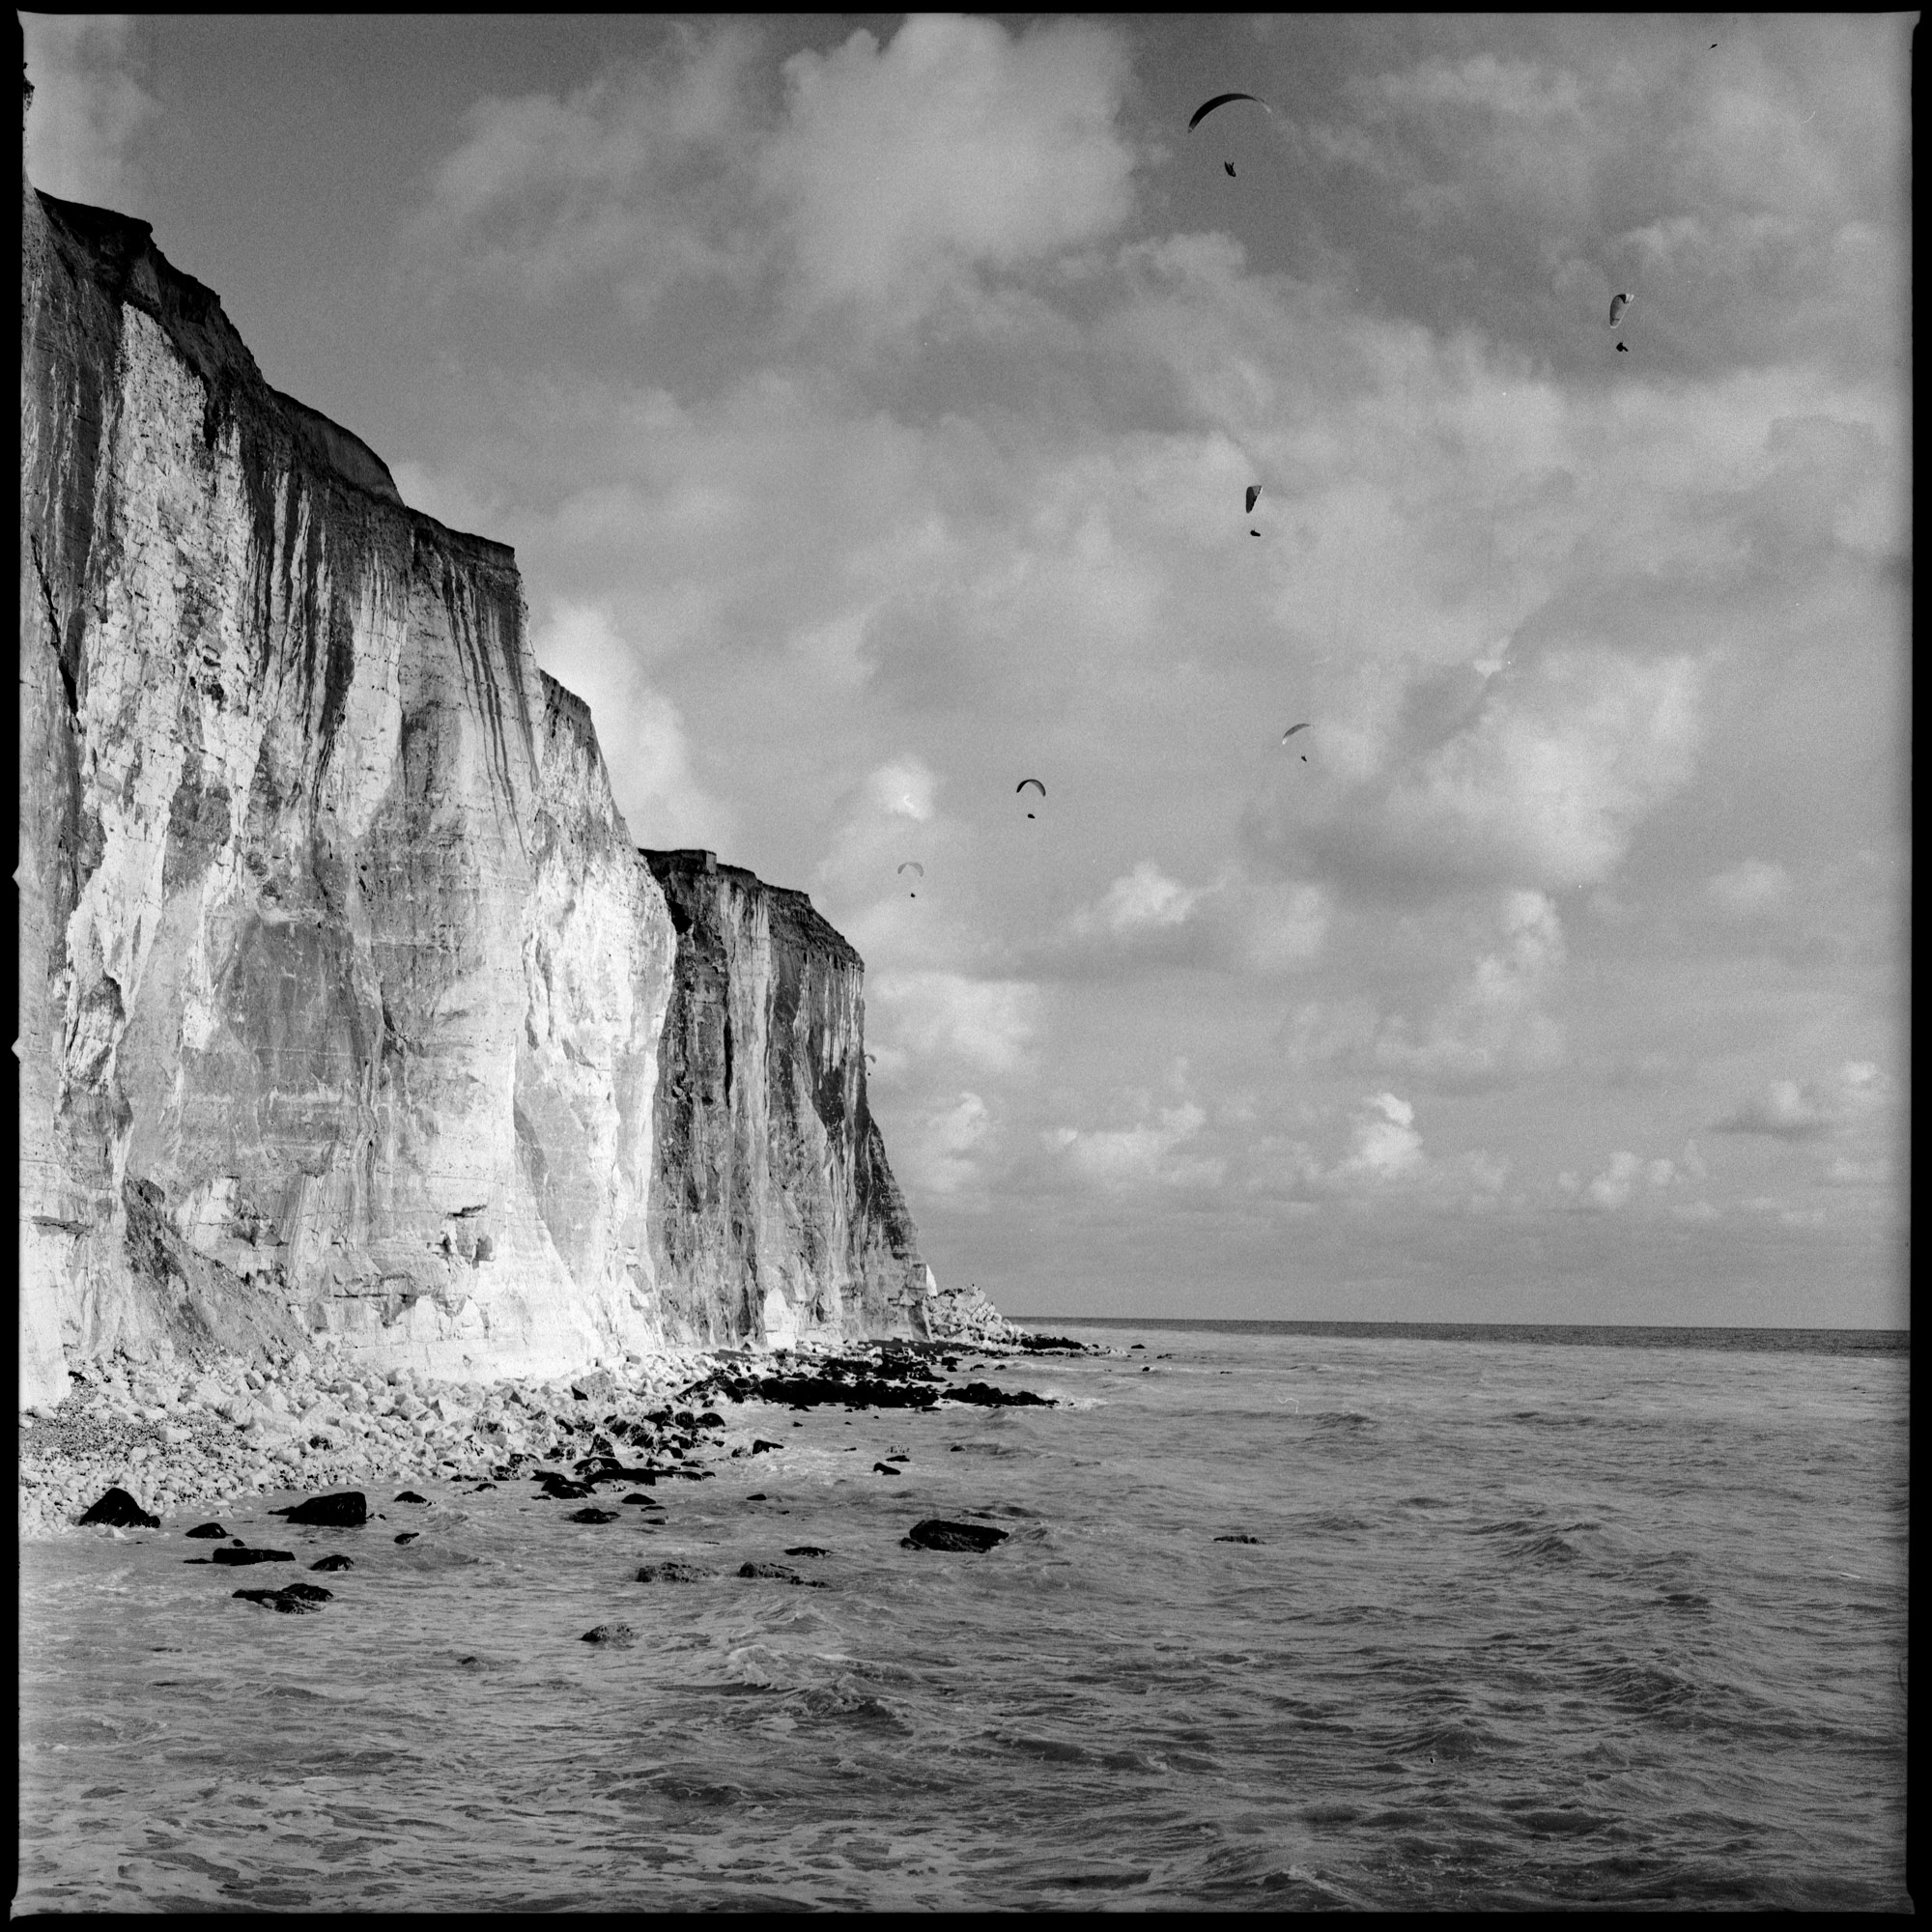 Paragliders Peacehaven cliff edge, black and white photo on film by ioannis koussertari.